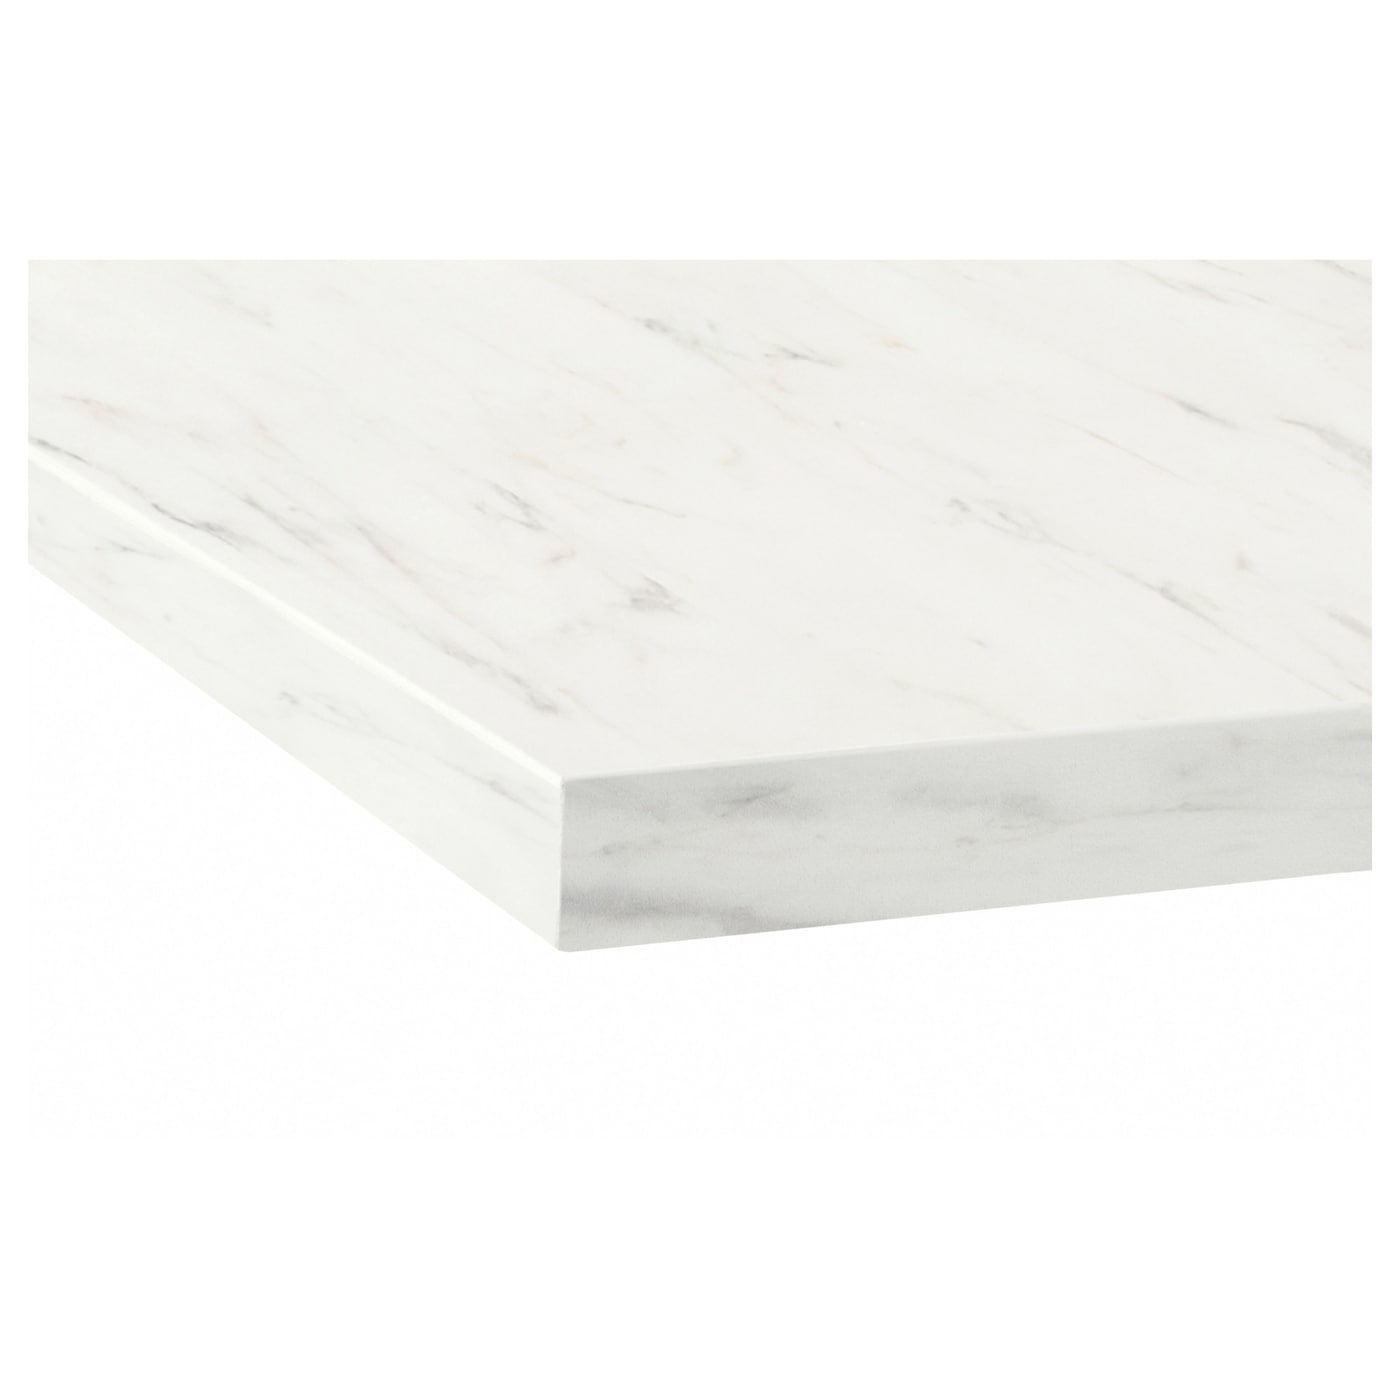 Two For Tuesday Marble Accessories For The Kitchenwhite: EKBACKEN Worktop White Marble Effect 246 X 2.8 Cm